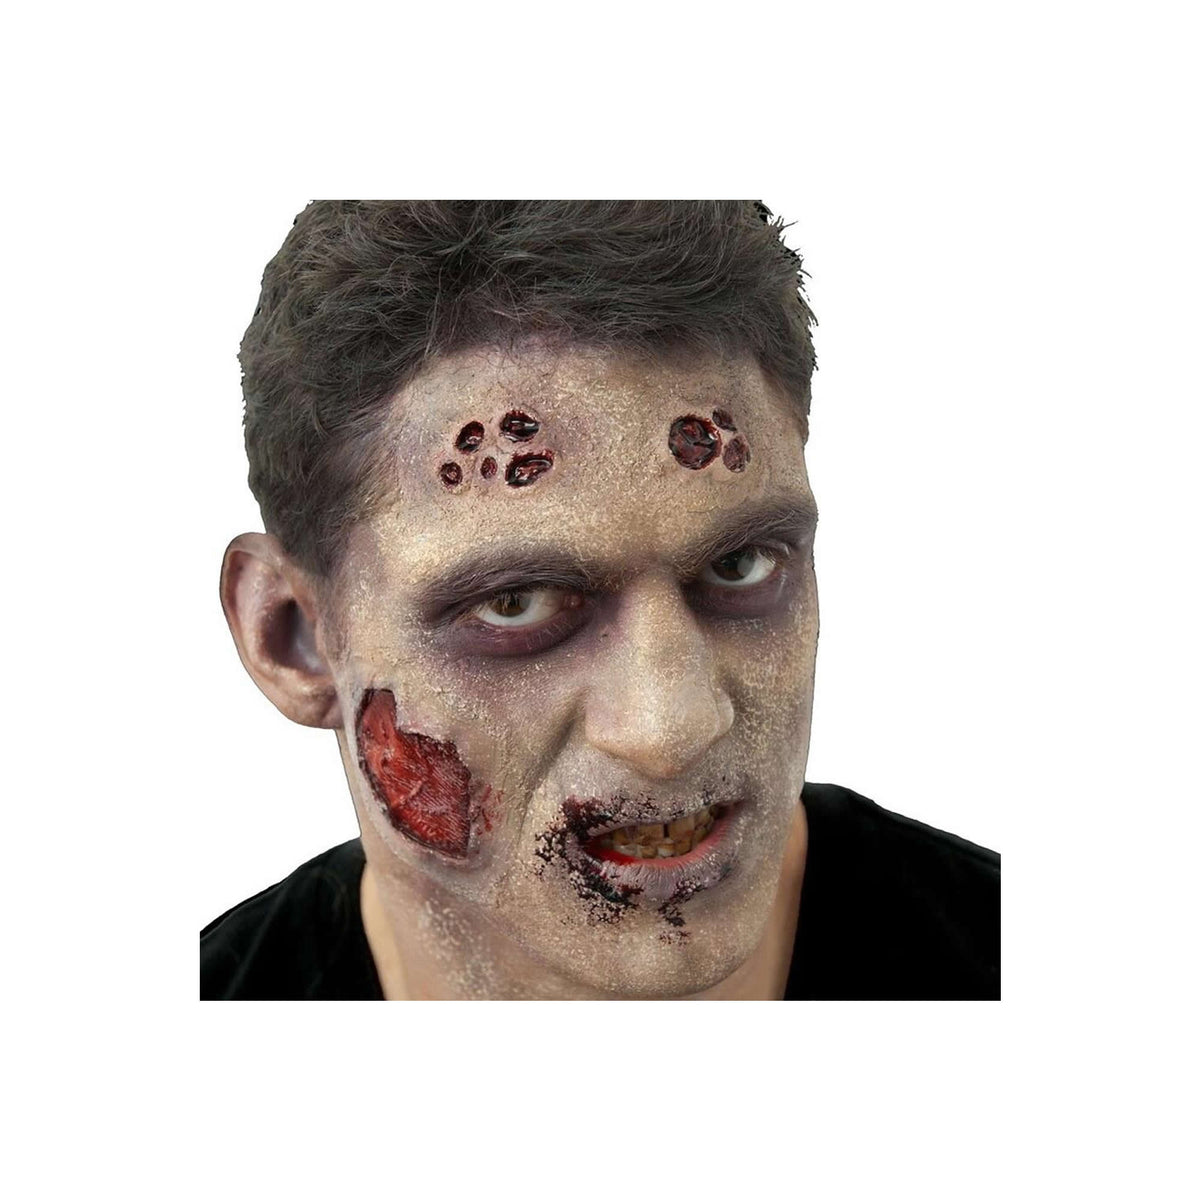 Woochie Zombie (Male) Deluxe FX Makeup Kit - Red Carpet FX - Professional Makeup